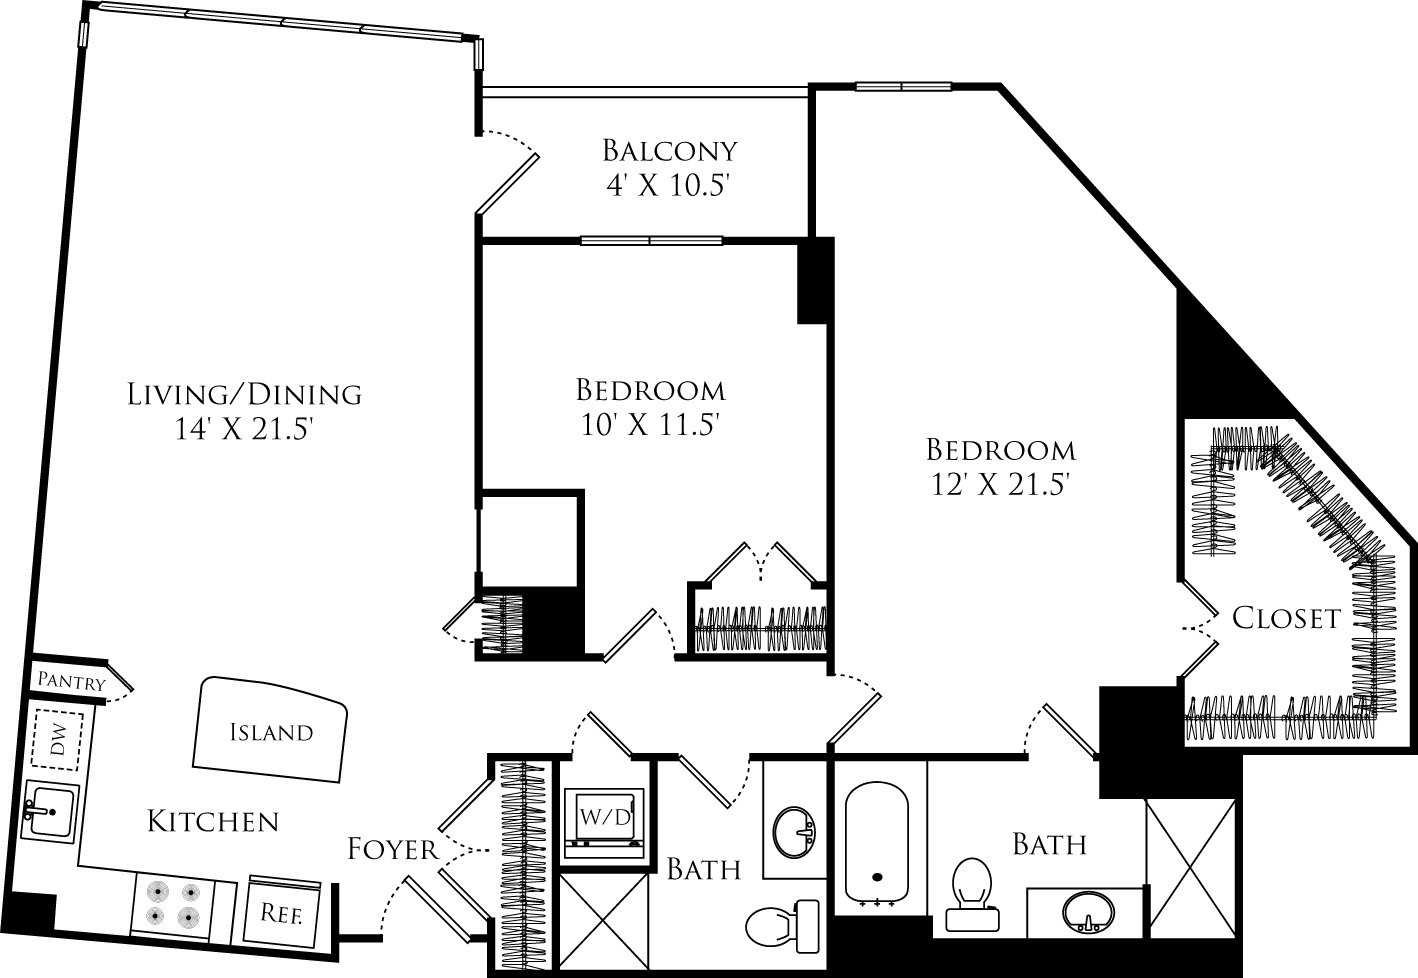 B2P floor plan with 2 beds, 2 baths and is 1256 square feet